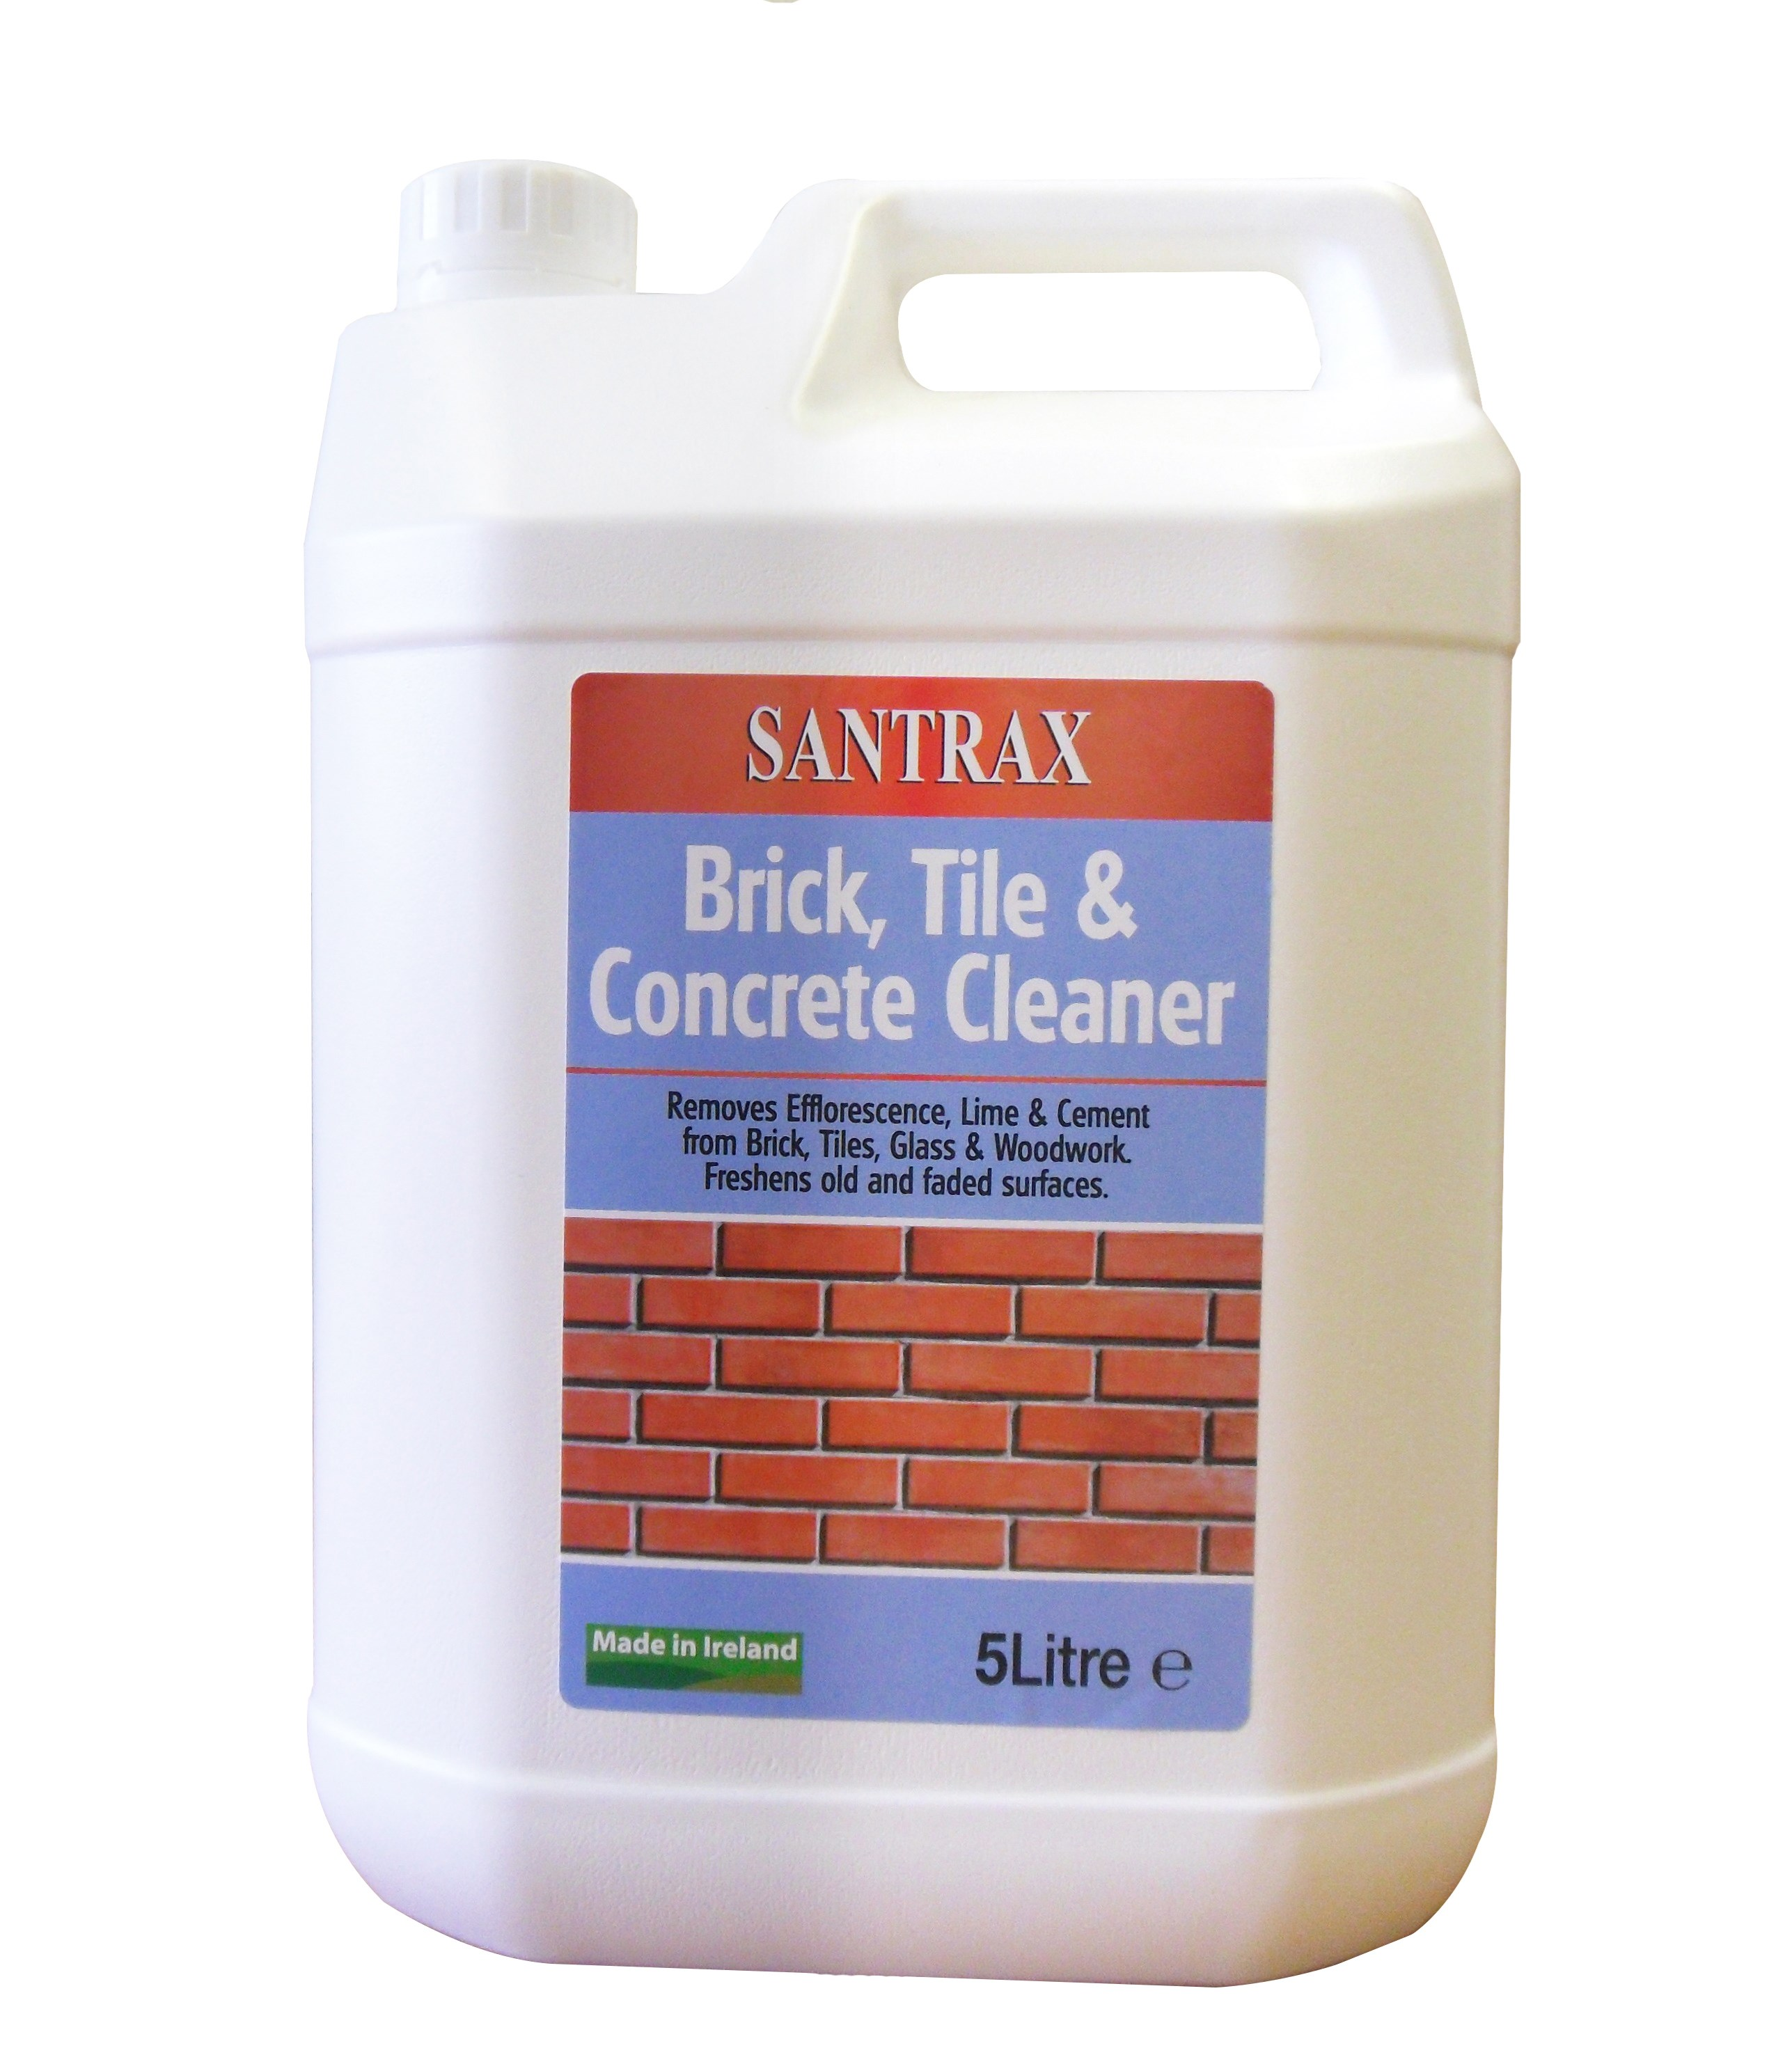 Santrax brick tile concrete cleaner 5 litre home for Best degreaser for concrete